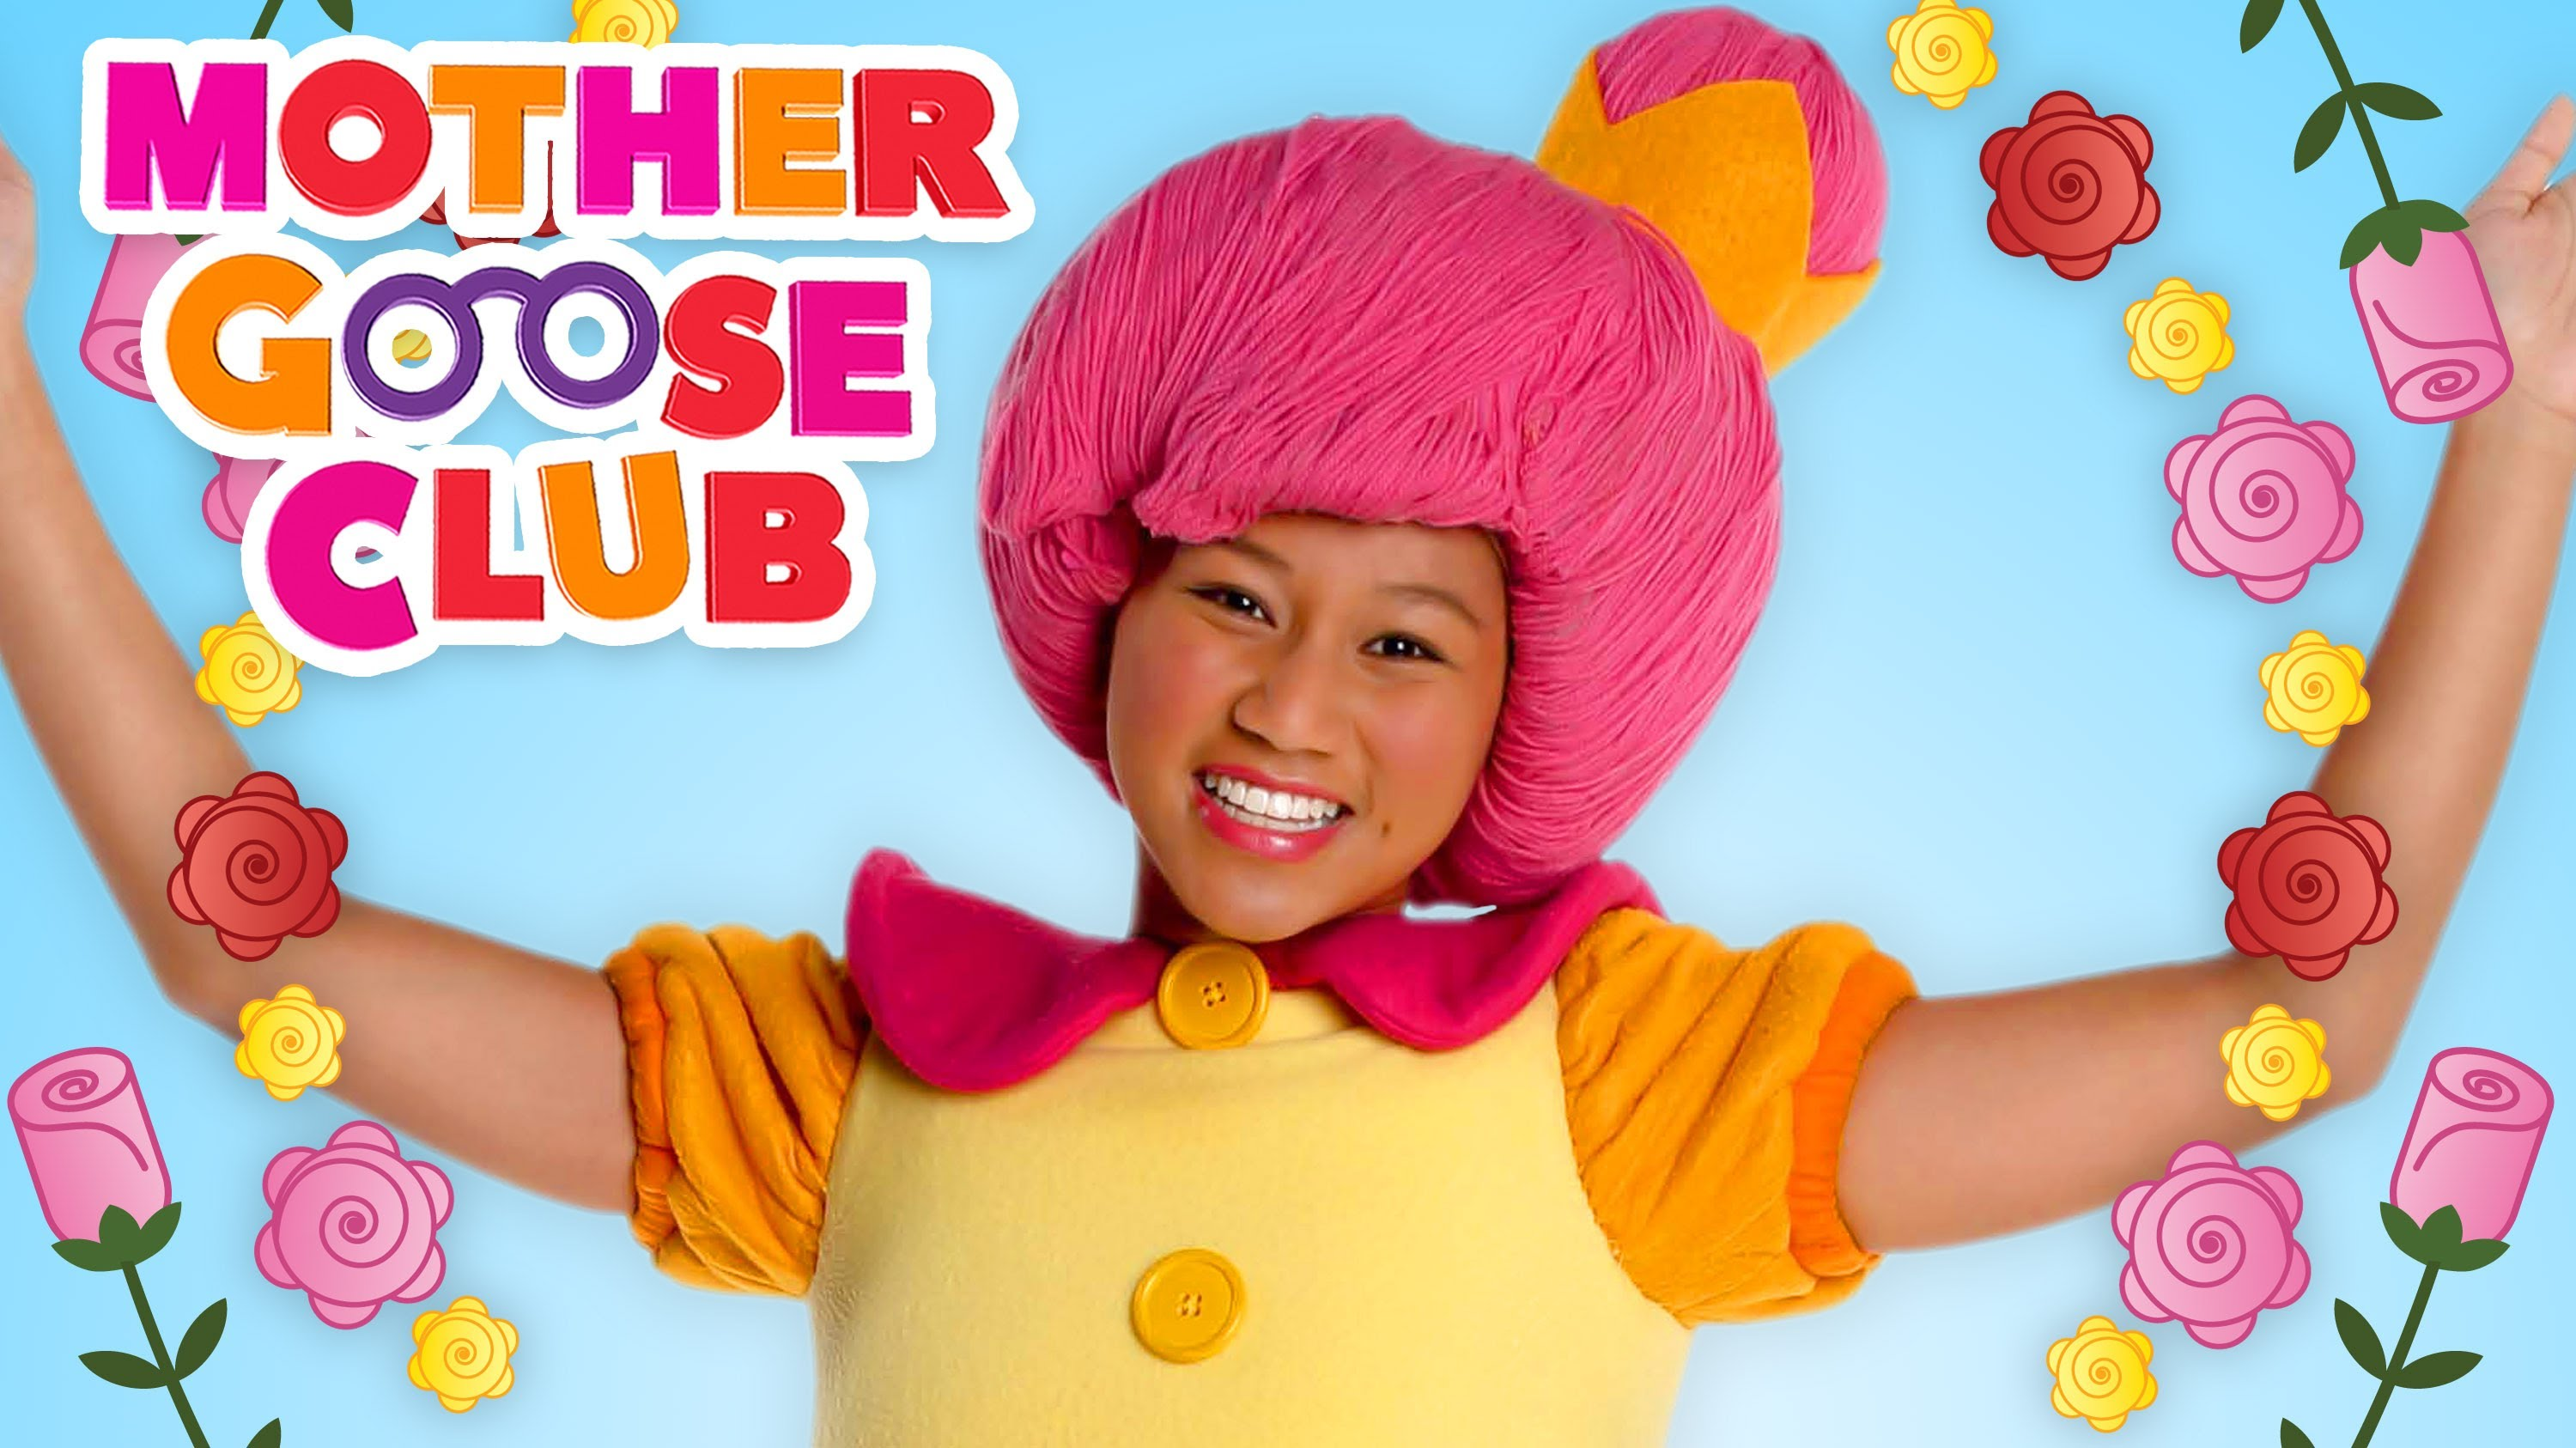 Ring Around the Rosy – Mother Goose Club Songs For Children